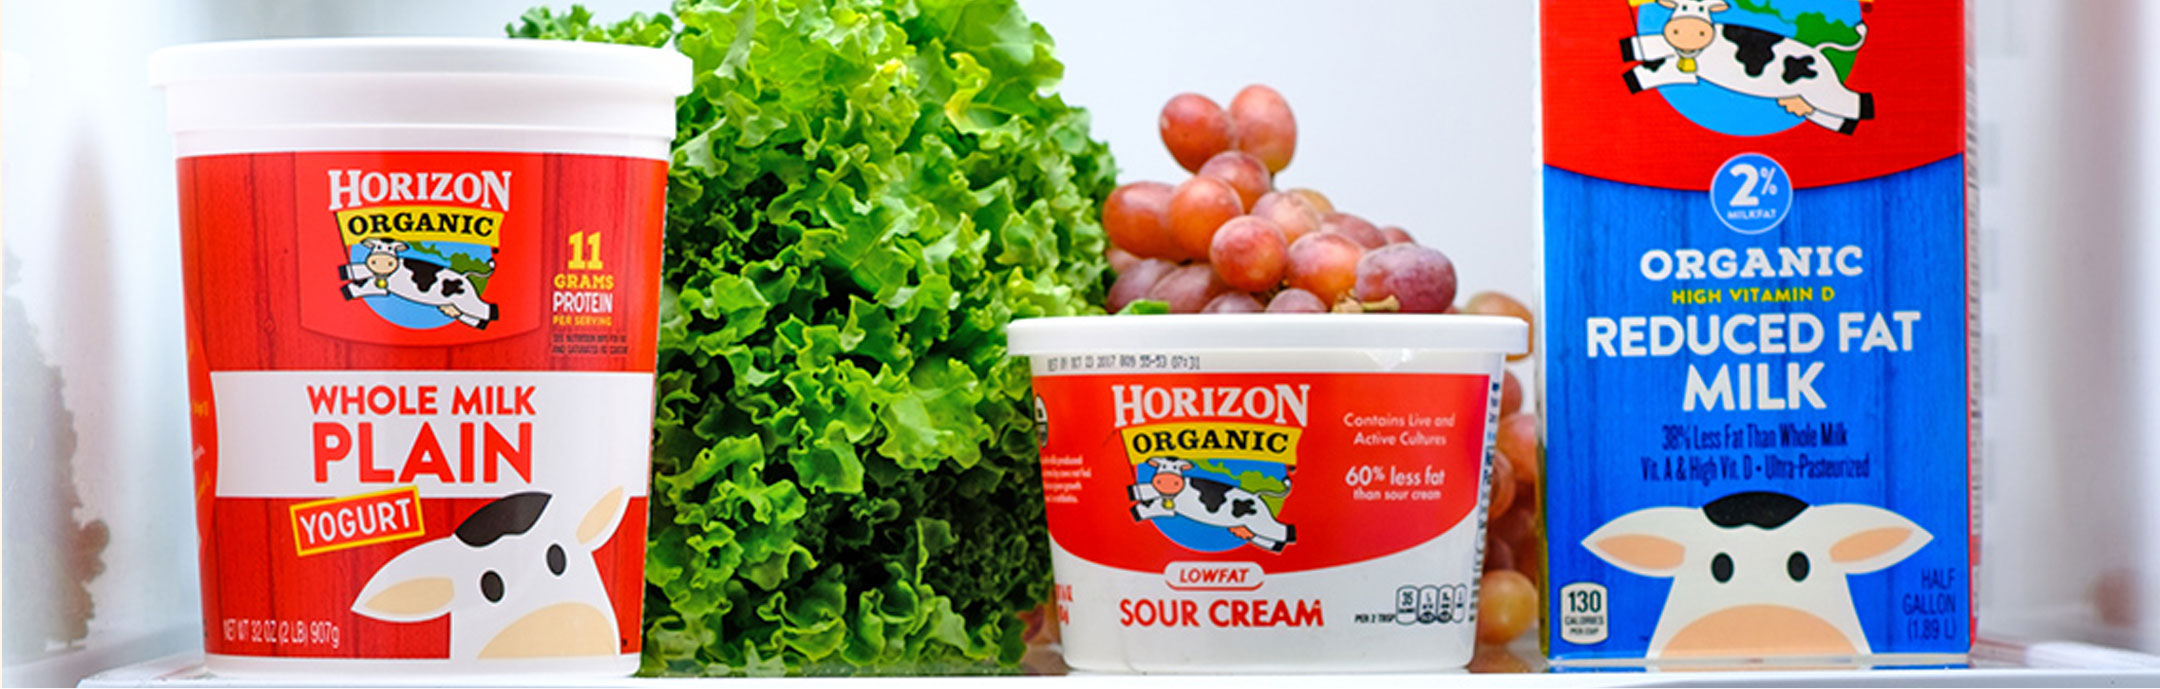 Horizon Organic Dairy Products - Milk, Cheese, Butter, and more